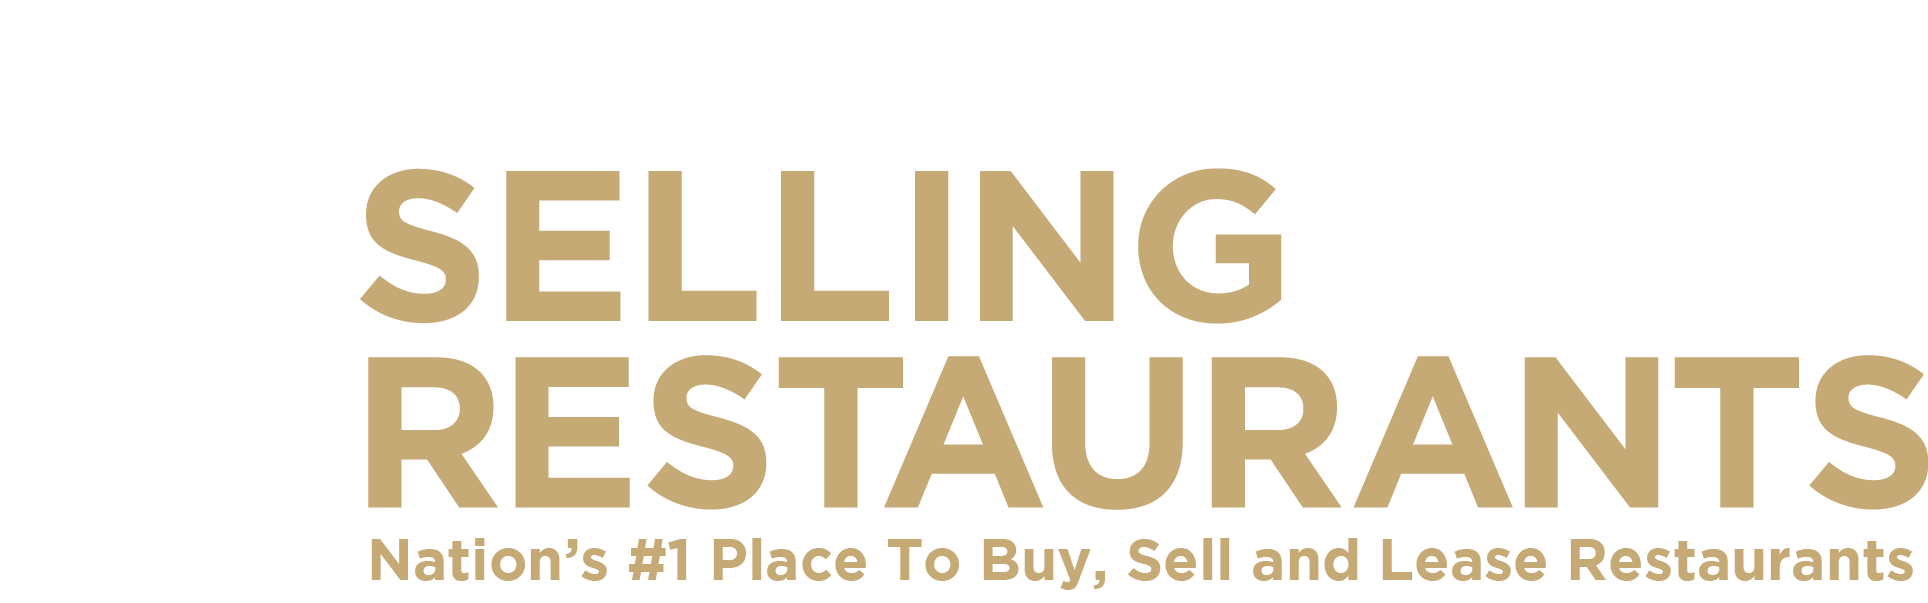 Selling Restaurants Logo